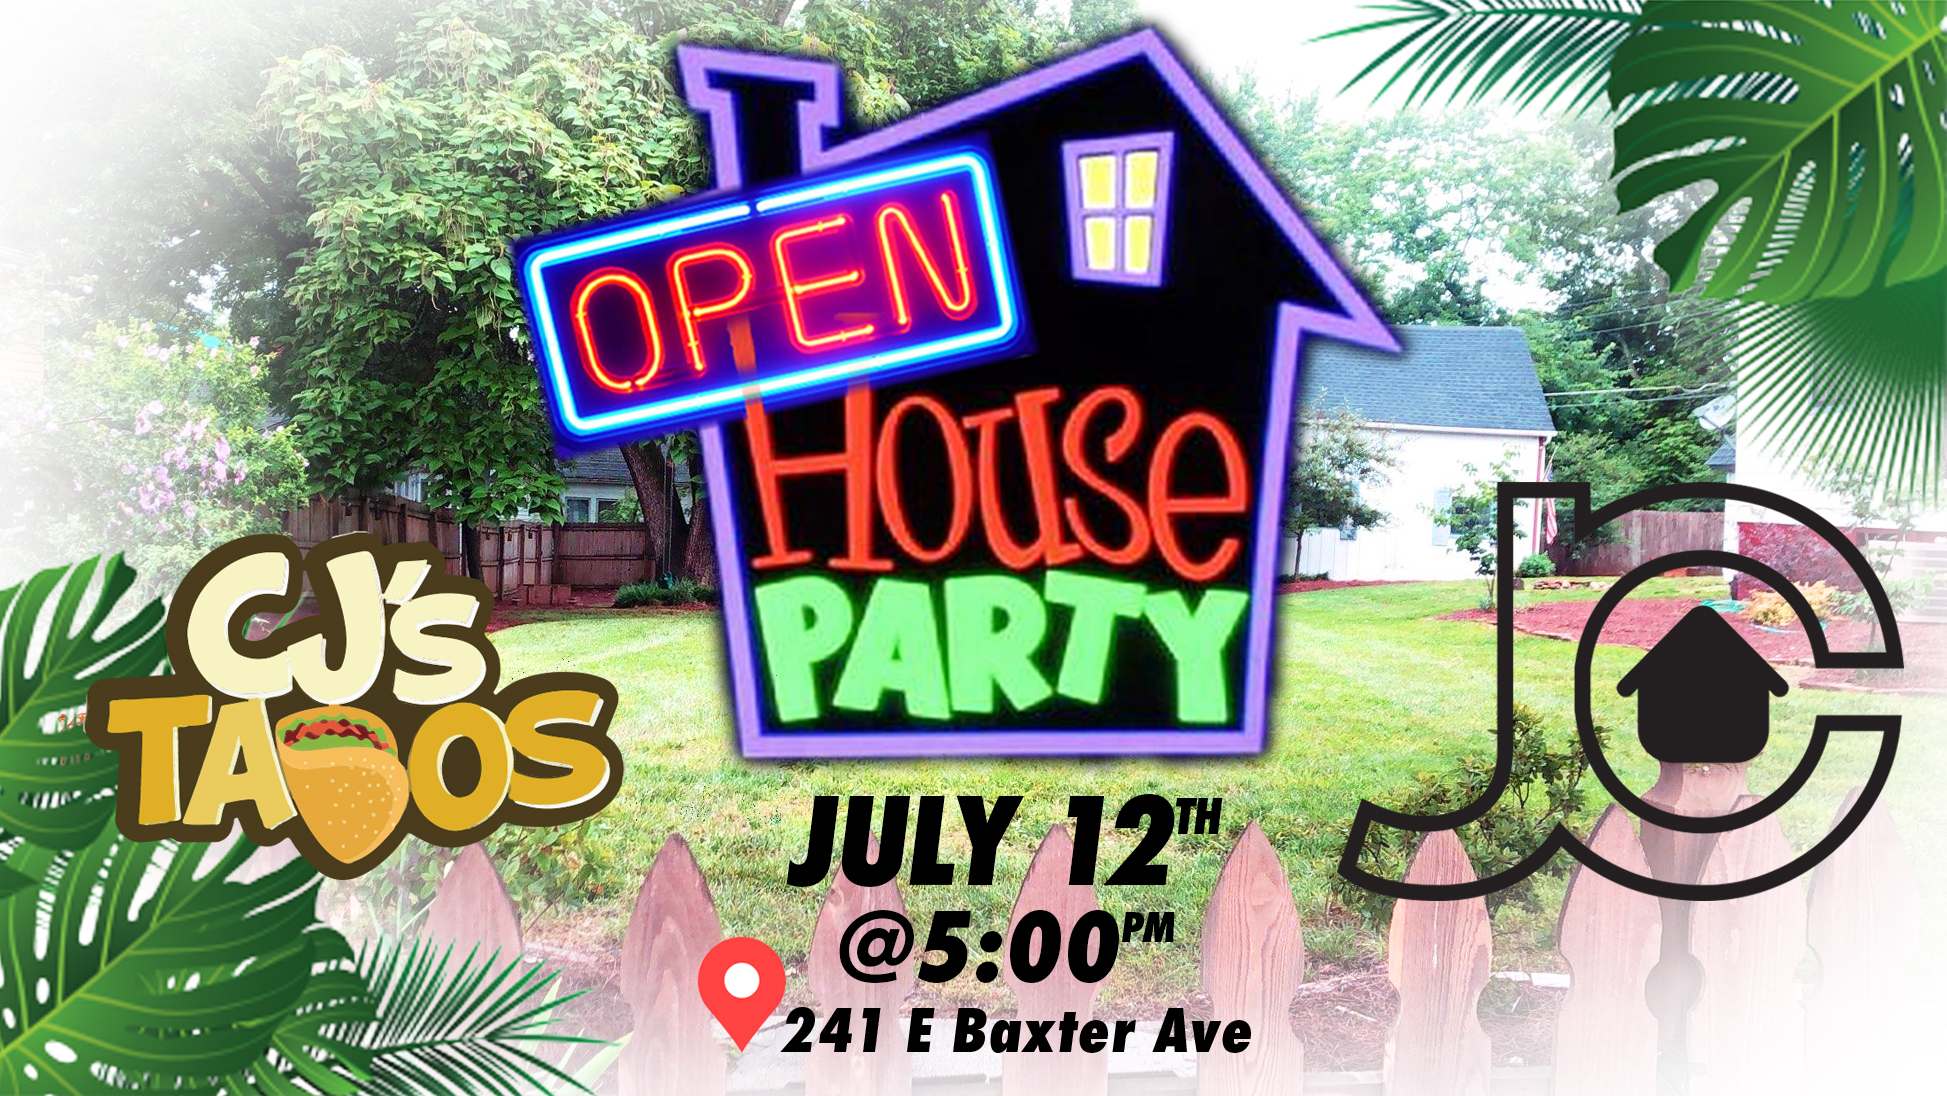 Open House Party.jpg